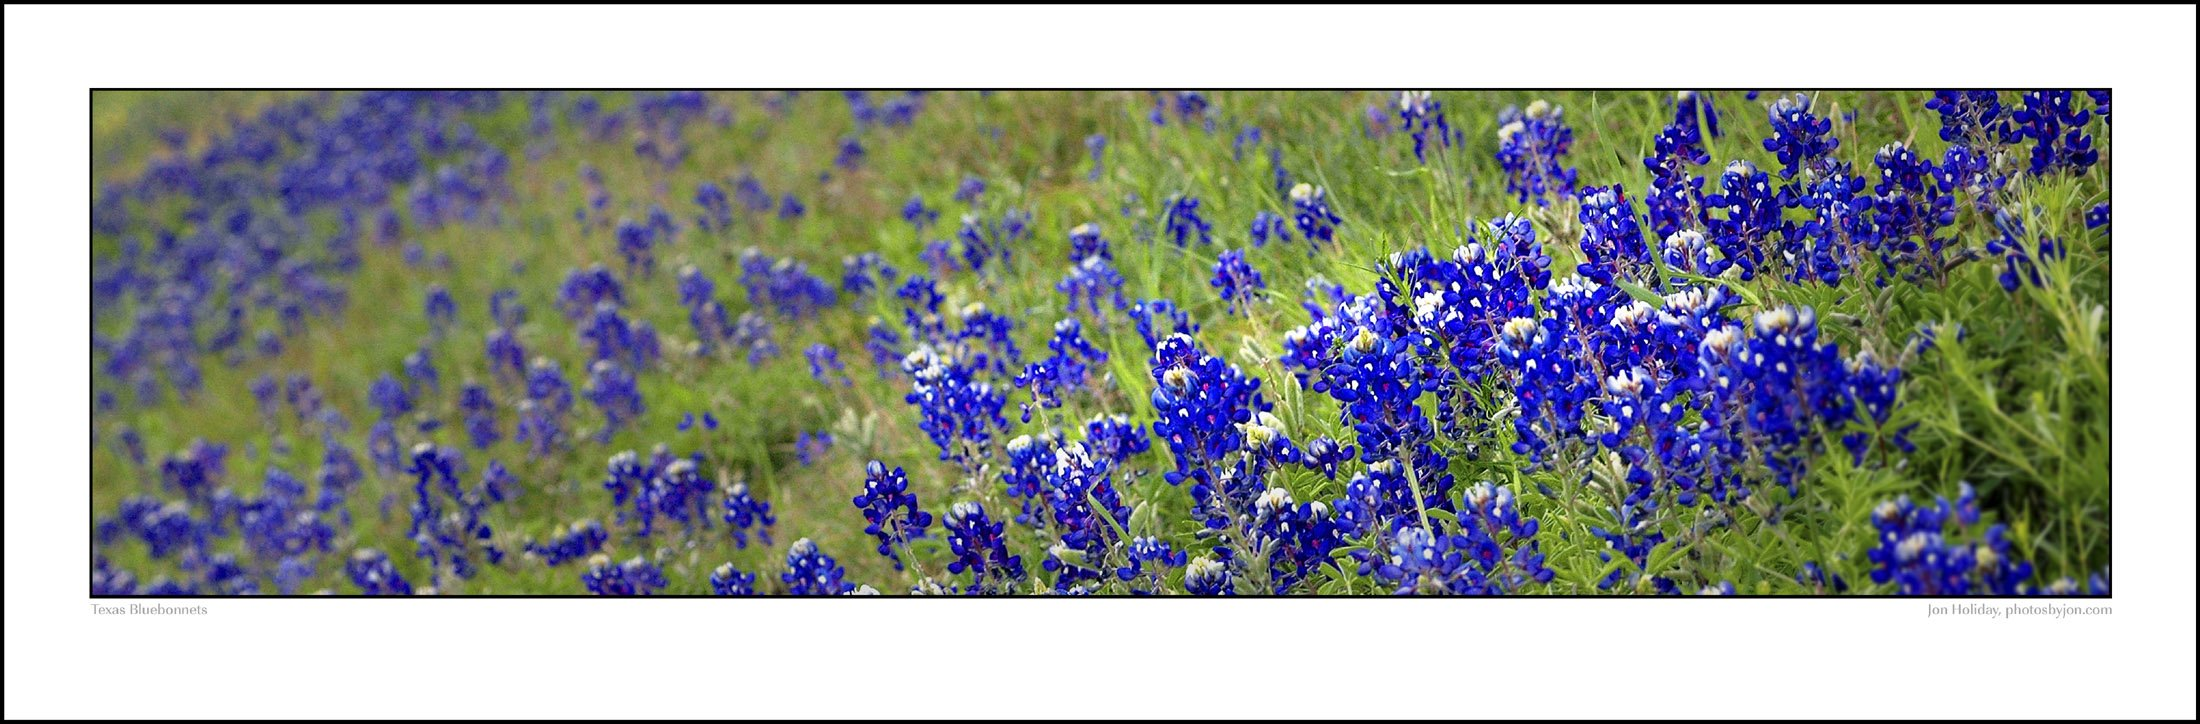 Texas Blue Bluebonnets Photographic Art Poster 12 inches X 36 inches Standard Size Print Photo Picture by PHOTOSBYJON